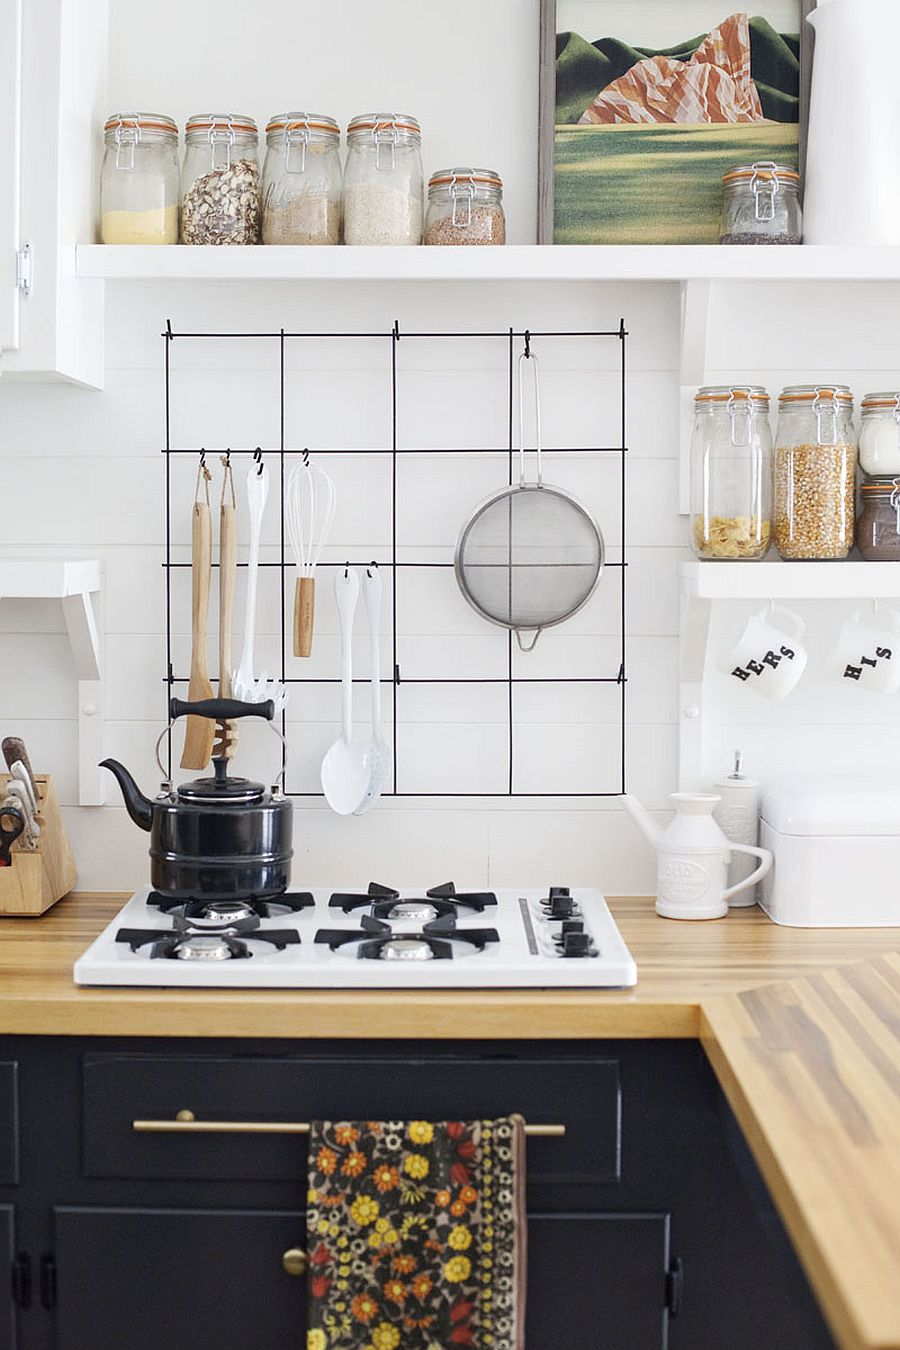 11 Diy Storage Ideas For The Small And Space Savvy Kitchen